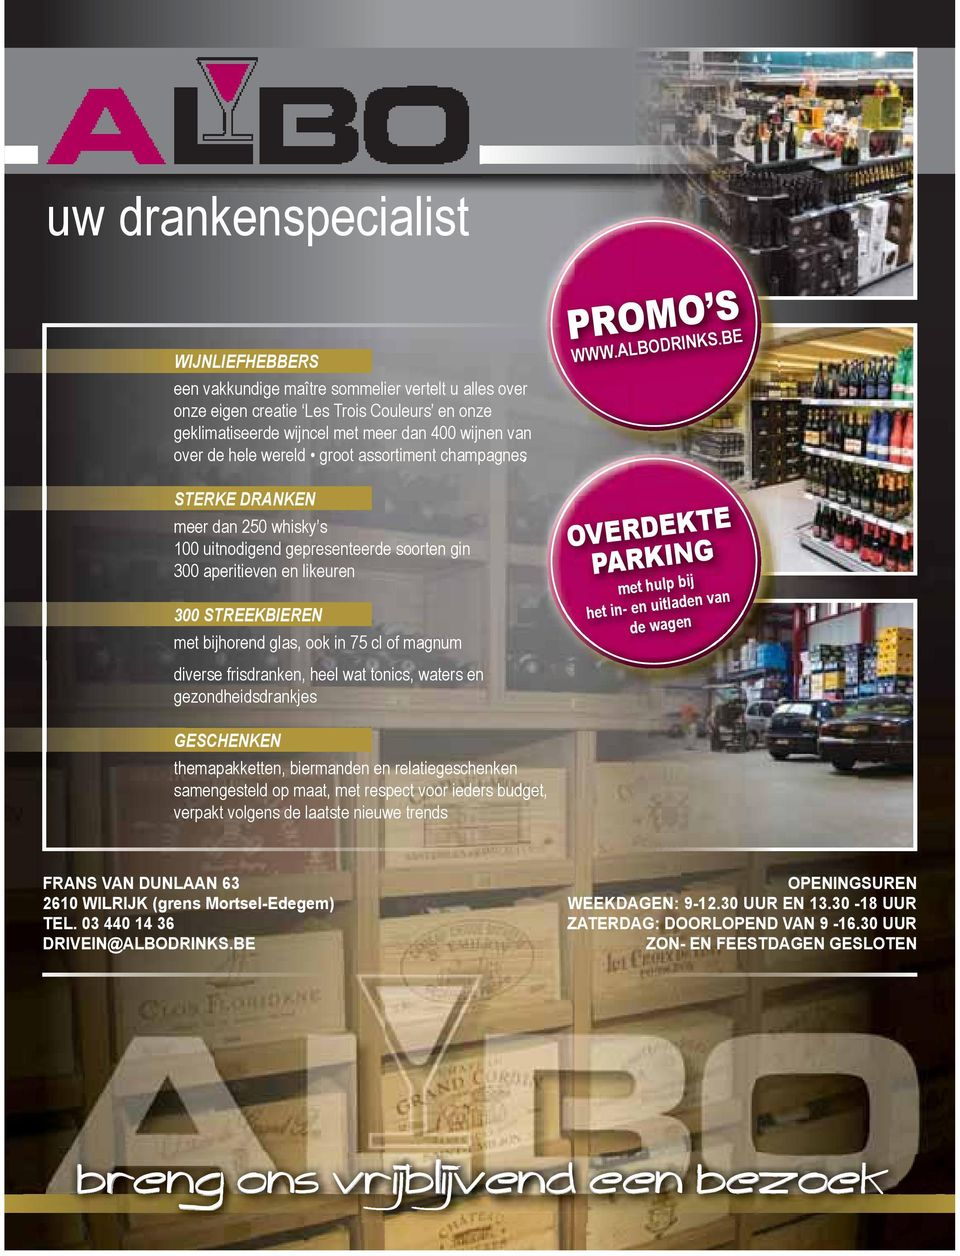 of magnum PROMO S WWW.ALBODRINKS.